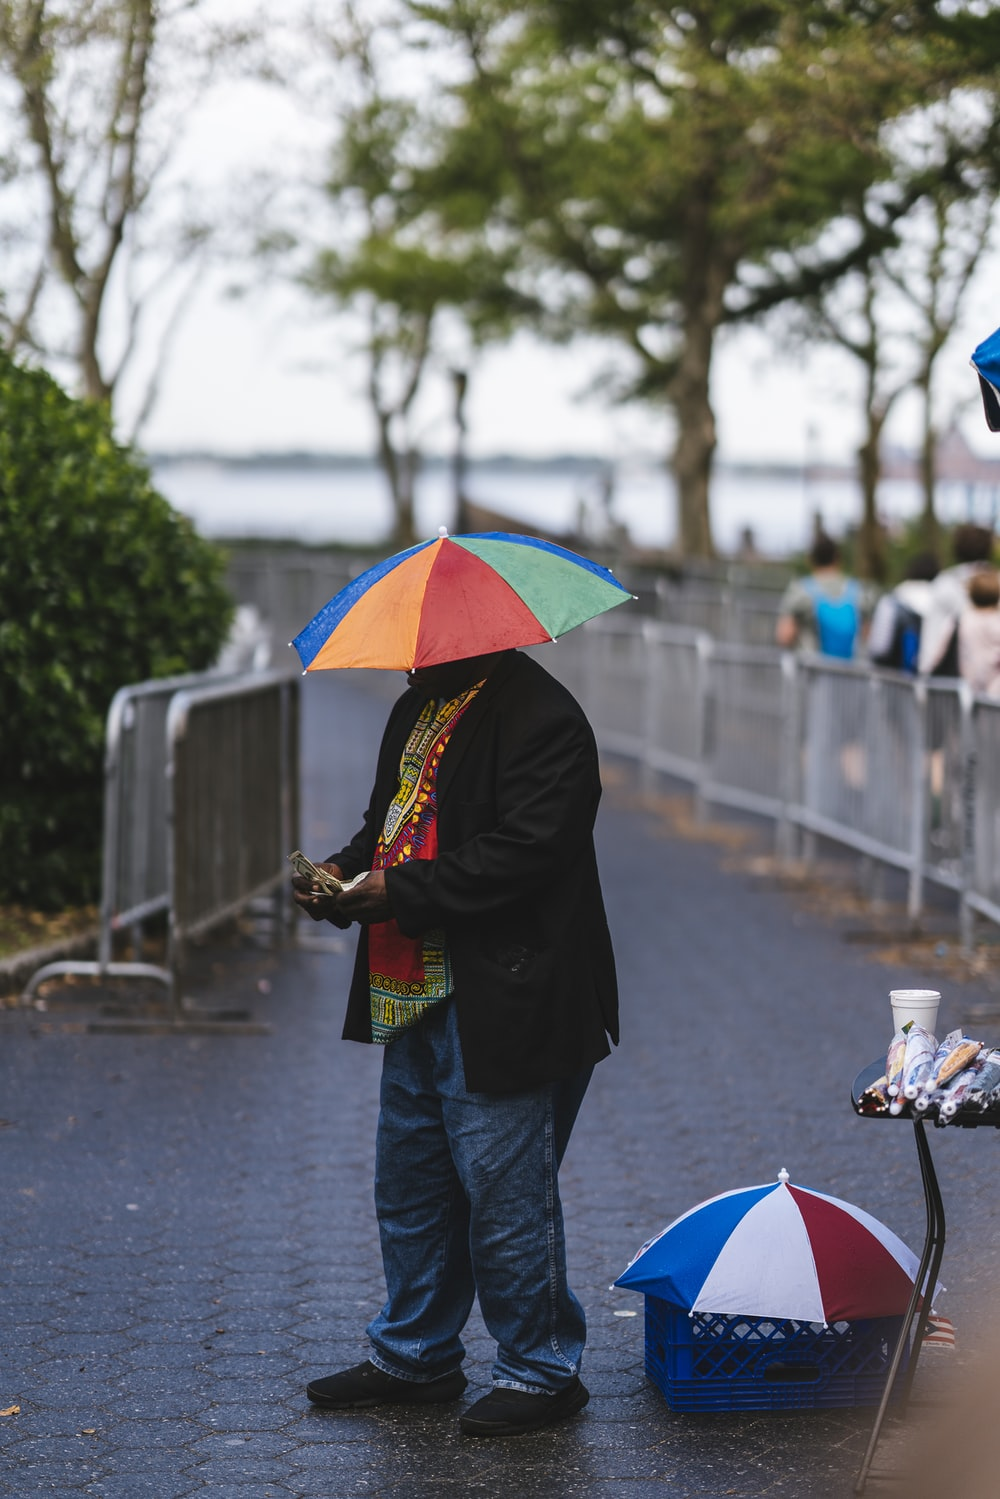 man with multicolored umbrella at standing on pathway and other people walking during daytime